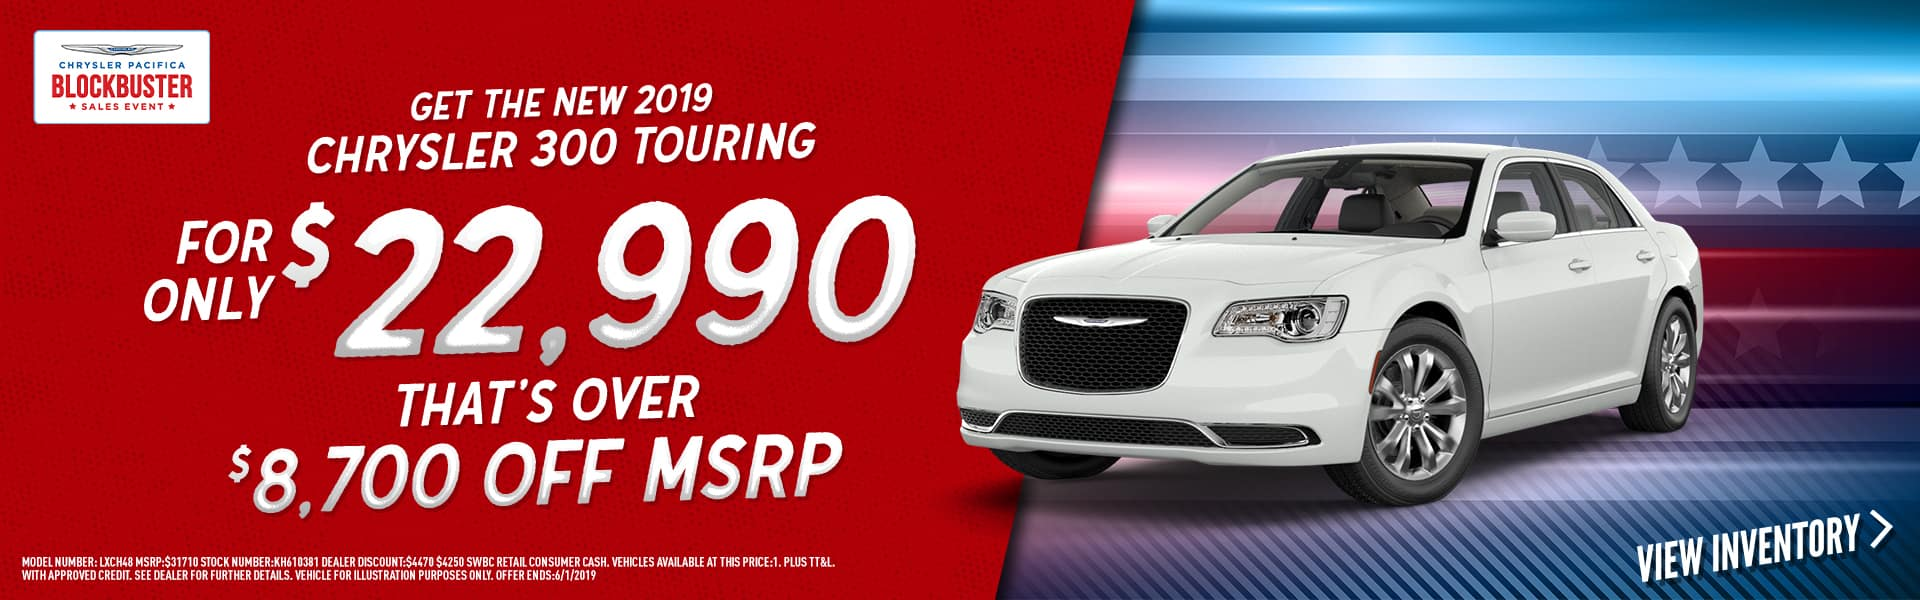 2019-chrysler-300-touring-for-22990-beaumont